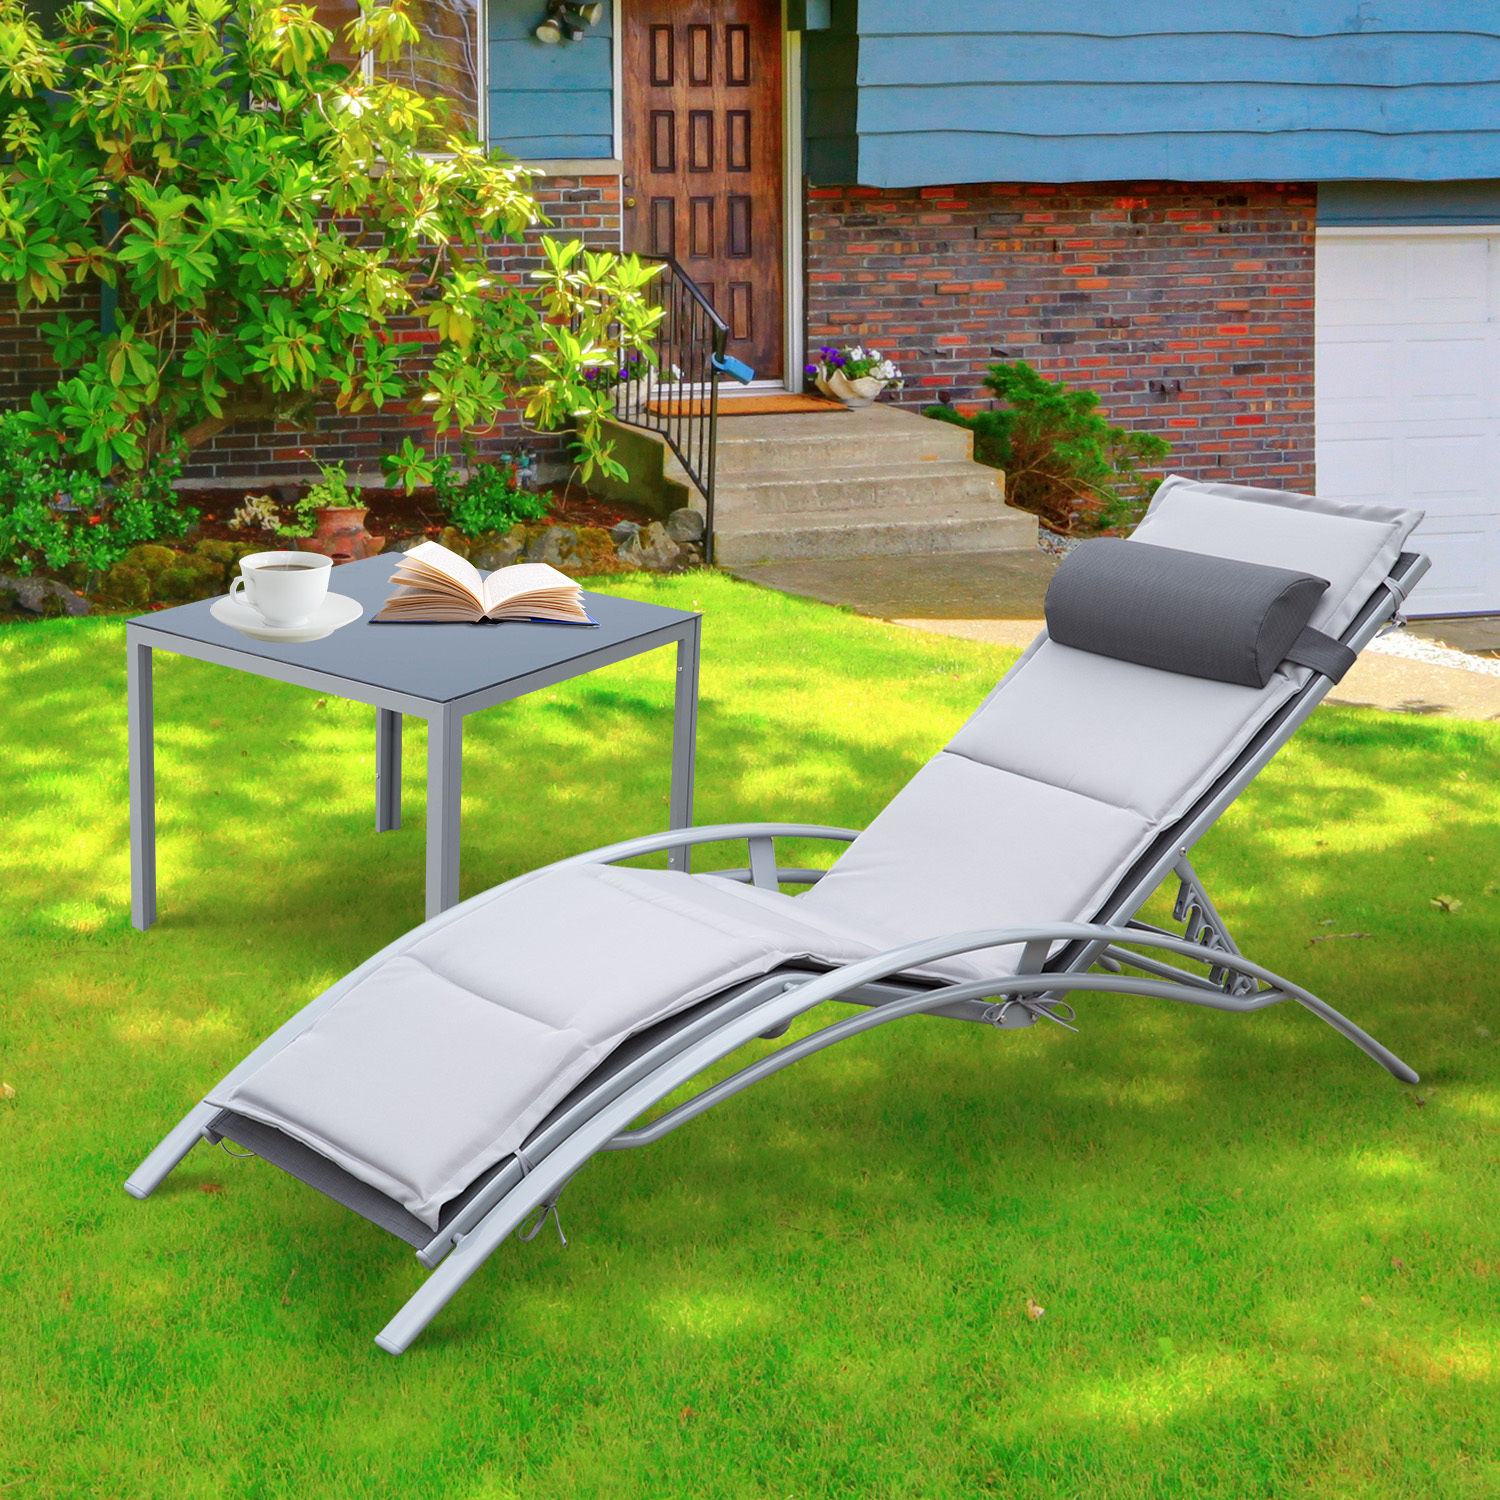 outsunny sonnenliege gartenliege gartenstuhl liege relaxsessel liegestuhl alu ebay. Black Bedroom Furniture Sets. Home Design Ideas